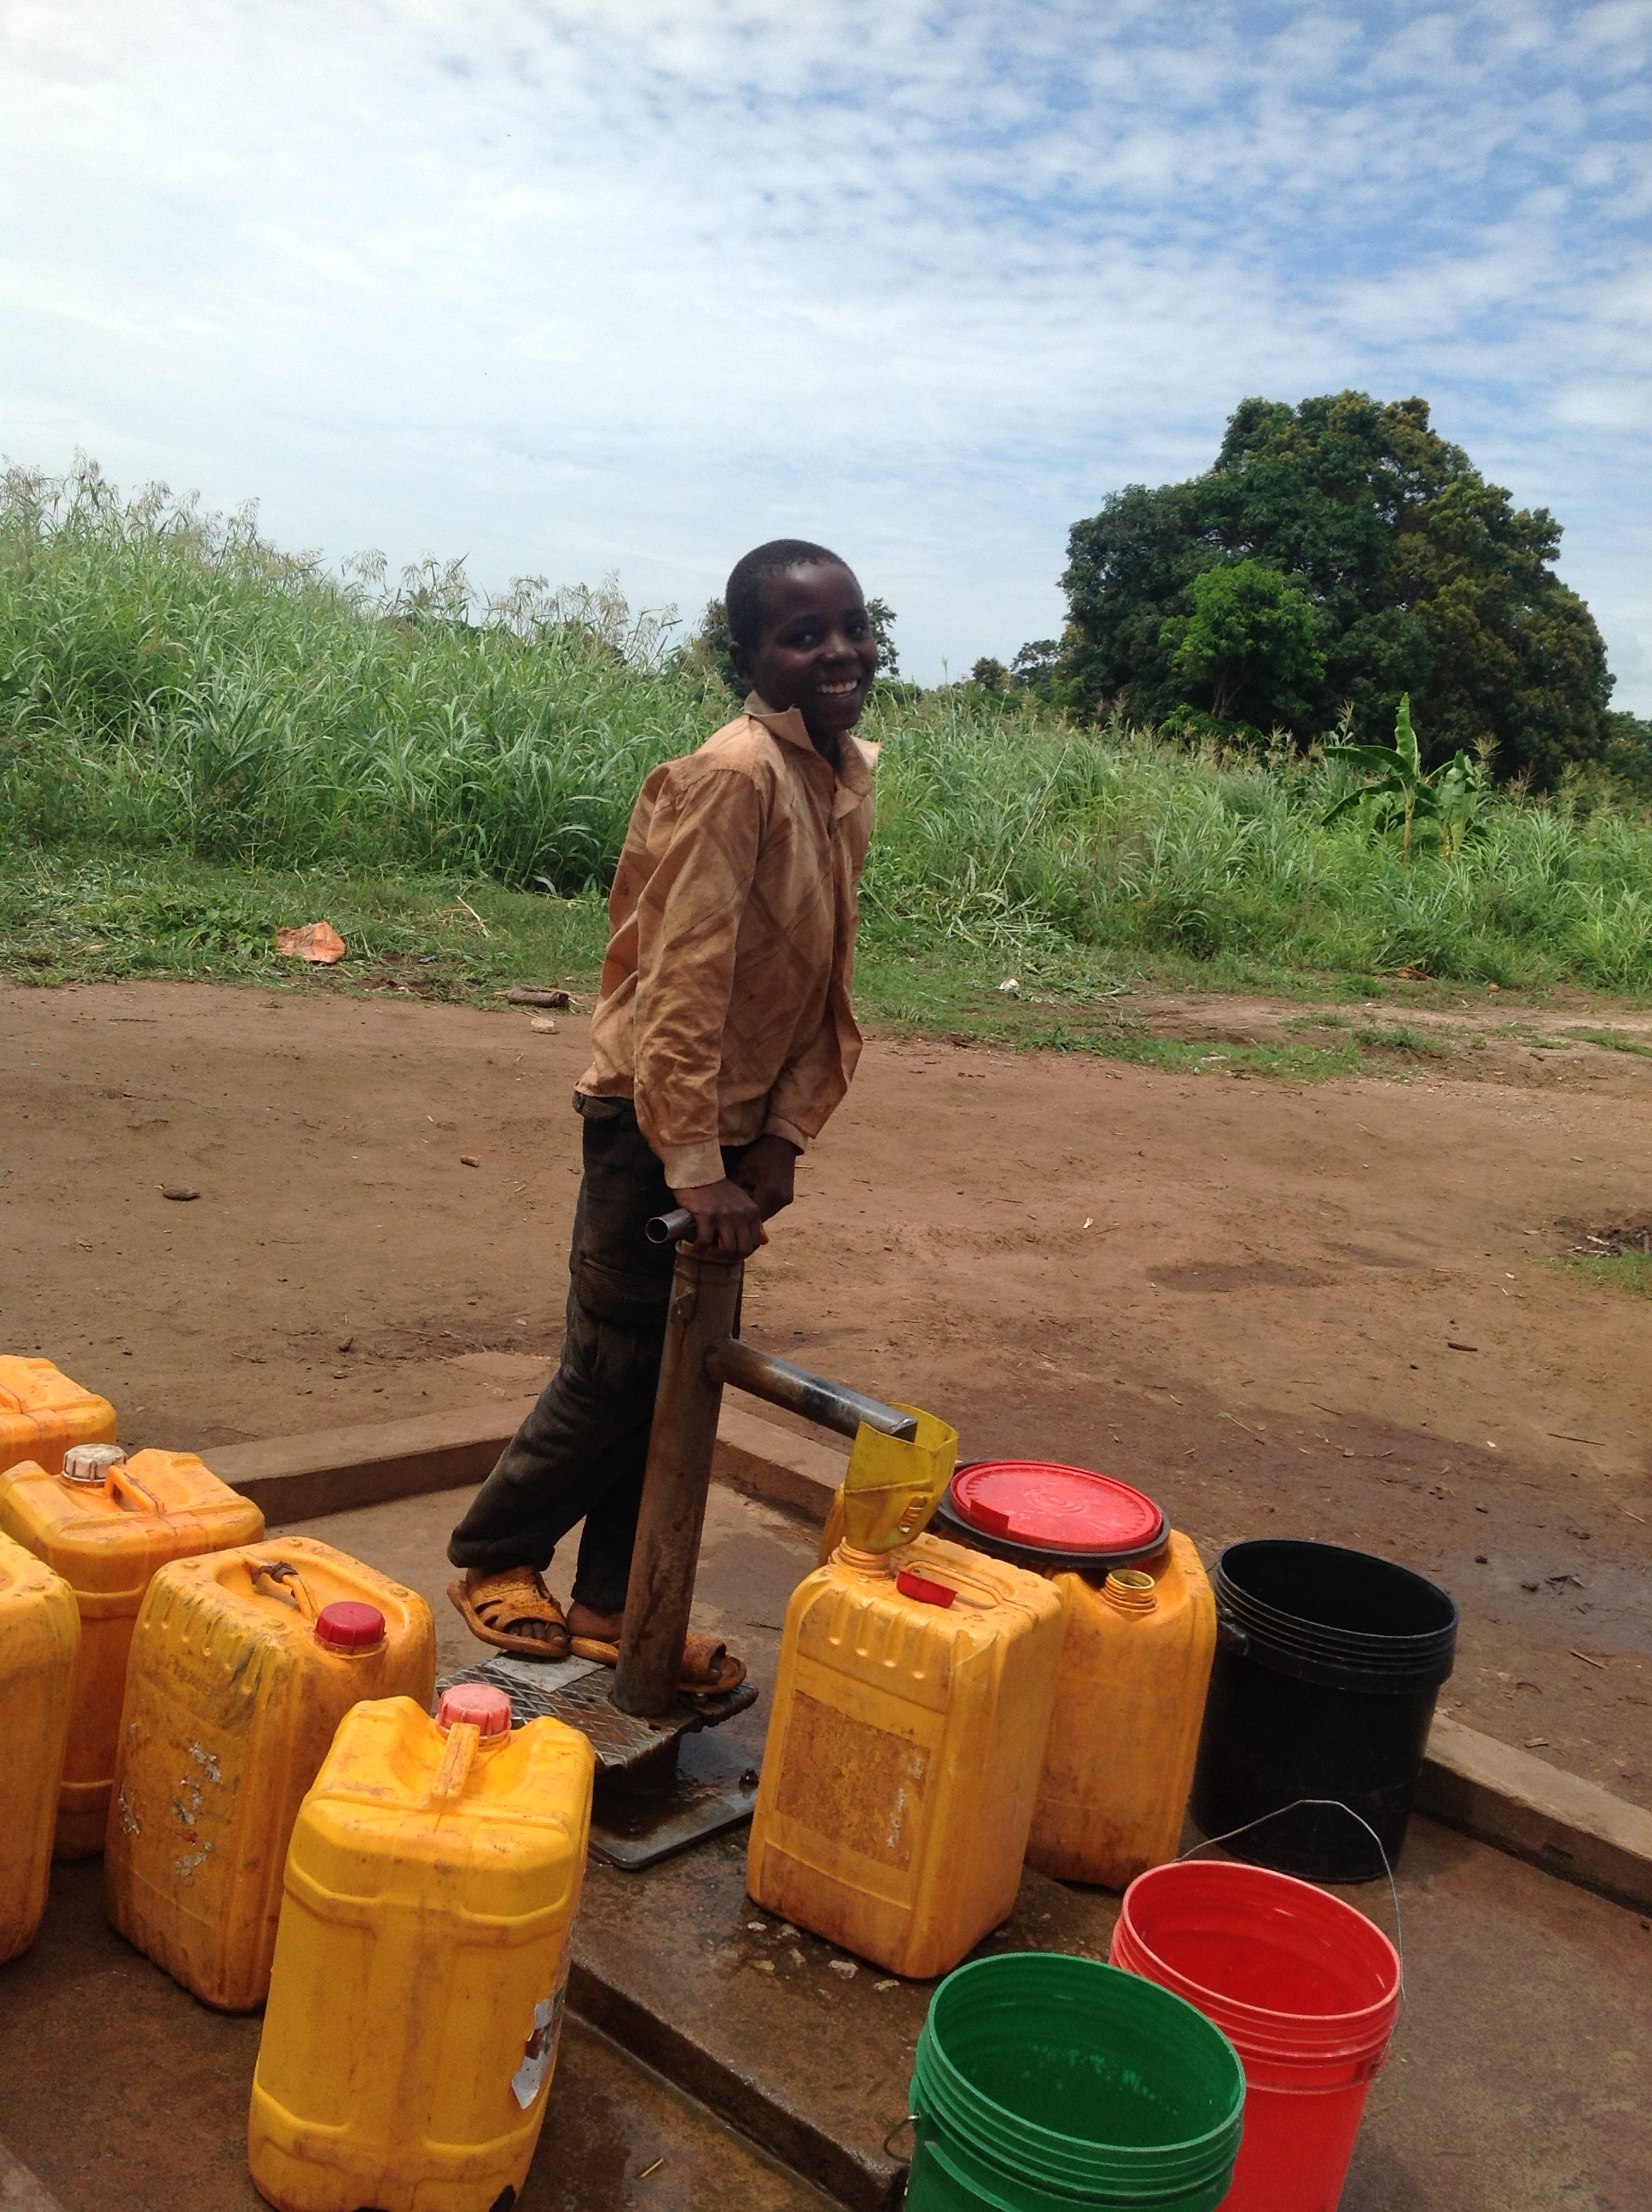 A boy pumps water in Ruponda, Tanzania. A new borehole in the village provides water for 3000 people. Photo: Zaida Bastos